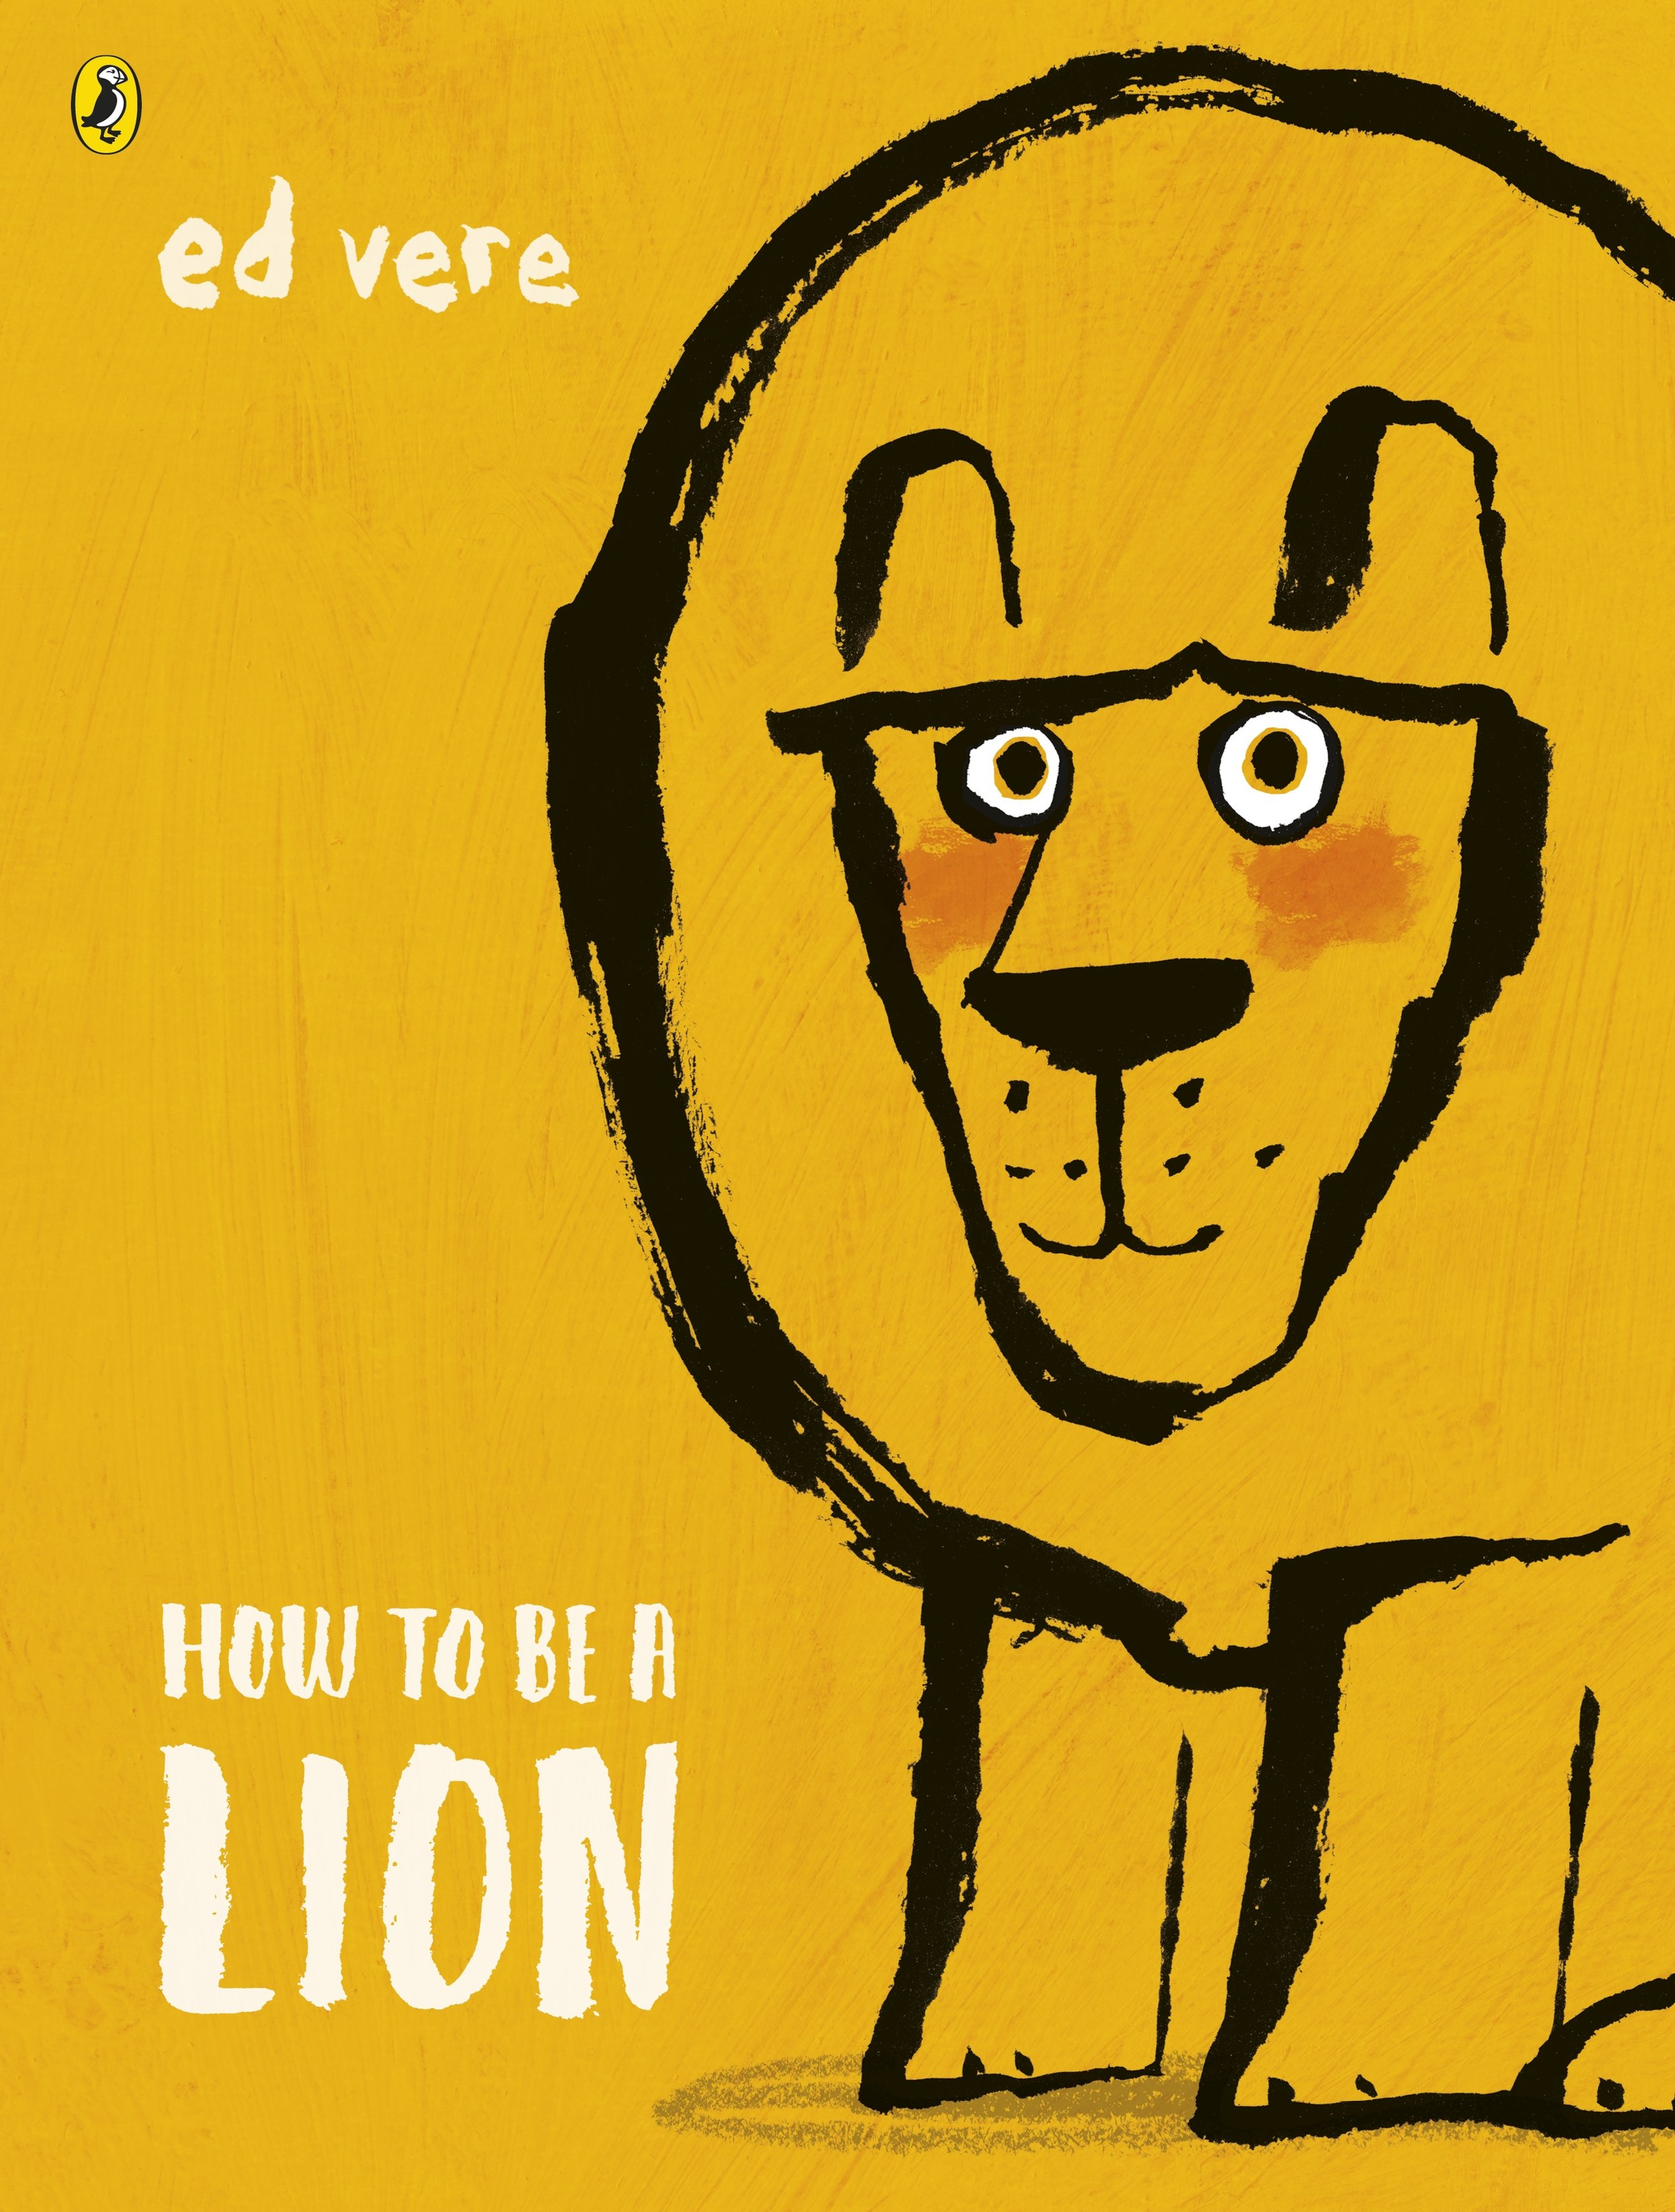 How To Be a Lion by Ed Vere, winner of Oscar's Book Prize 2019